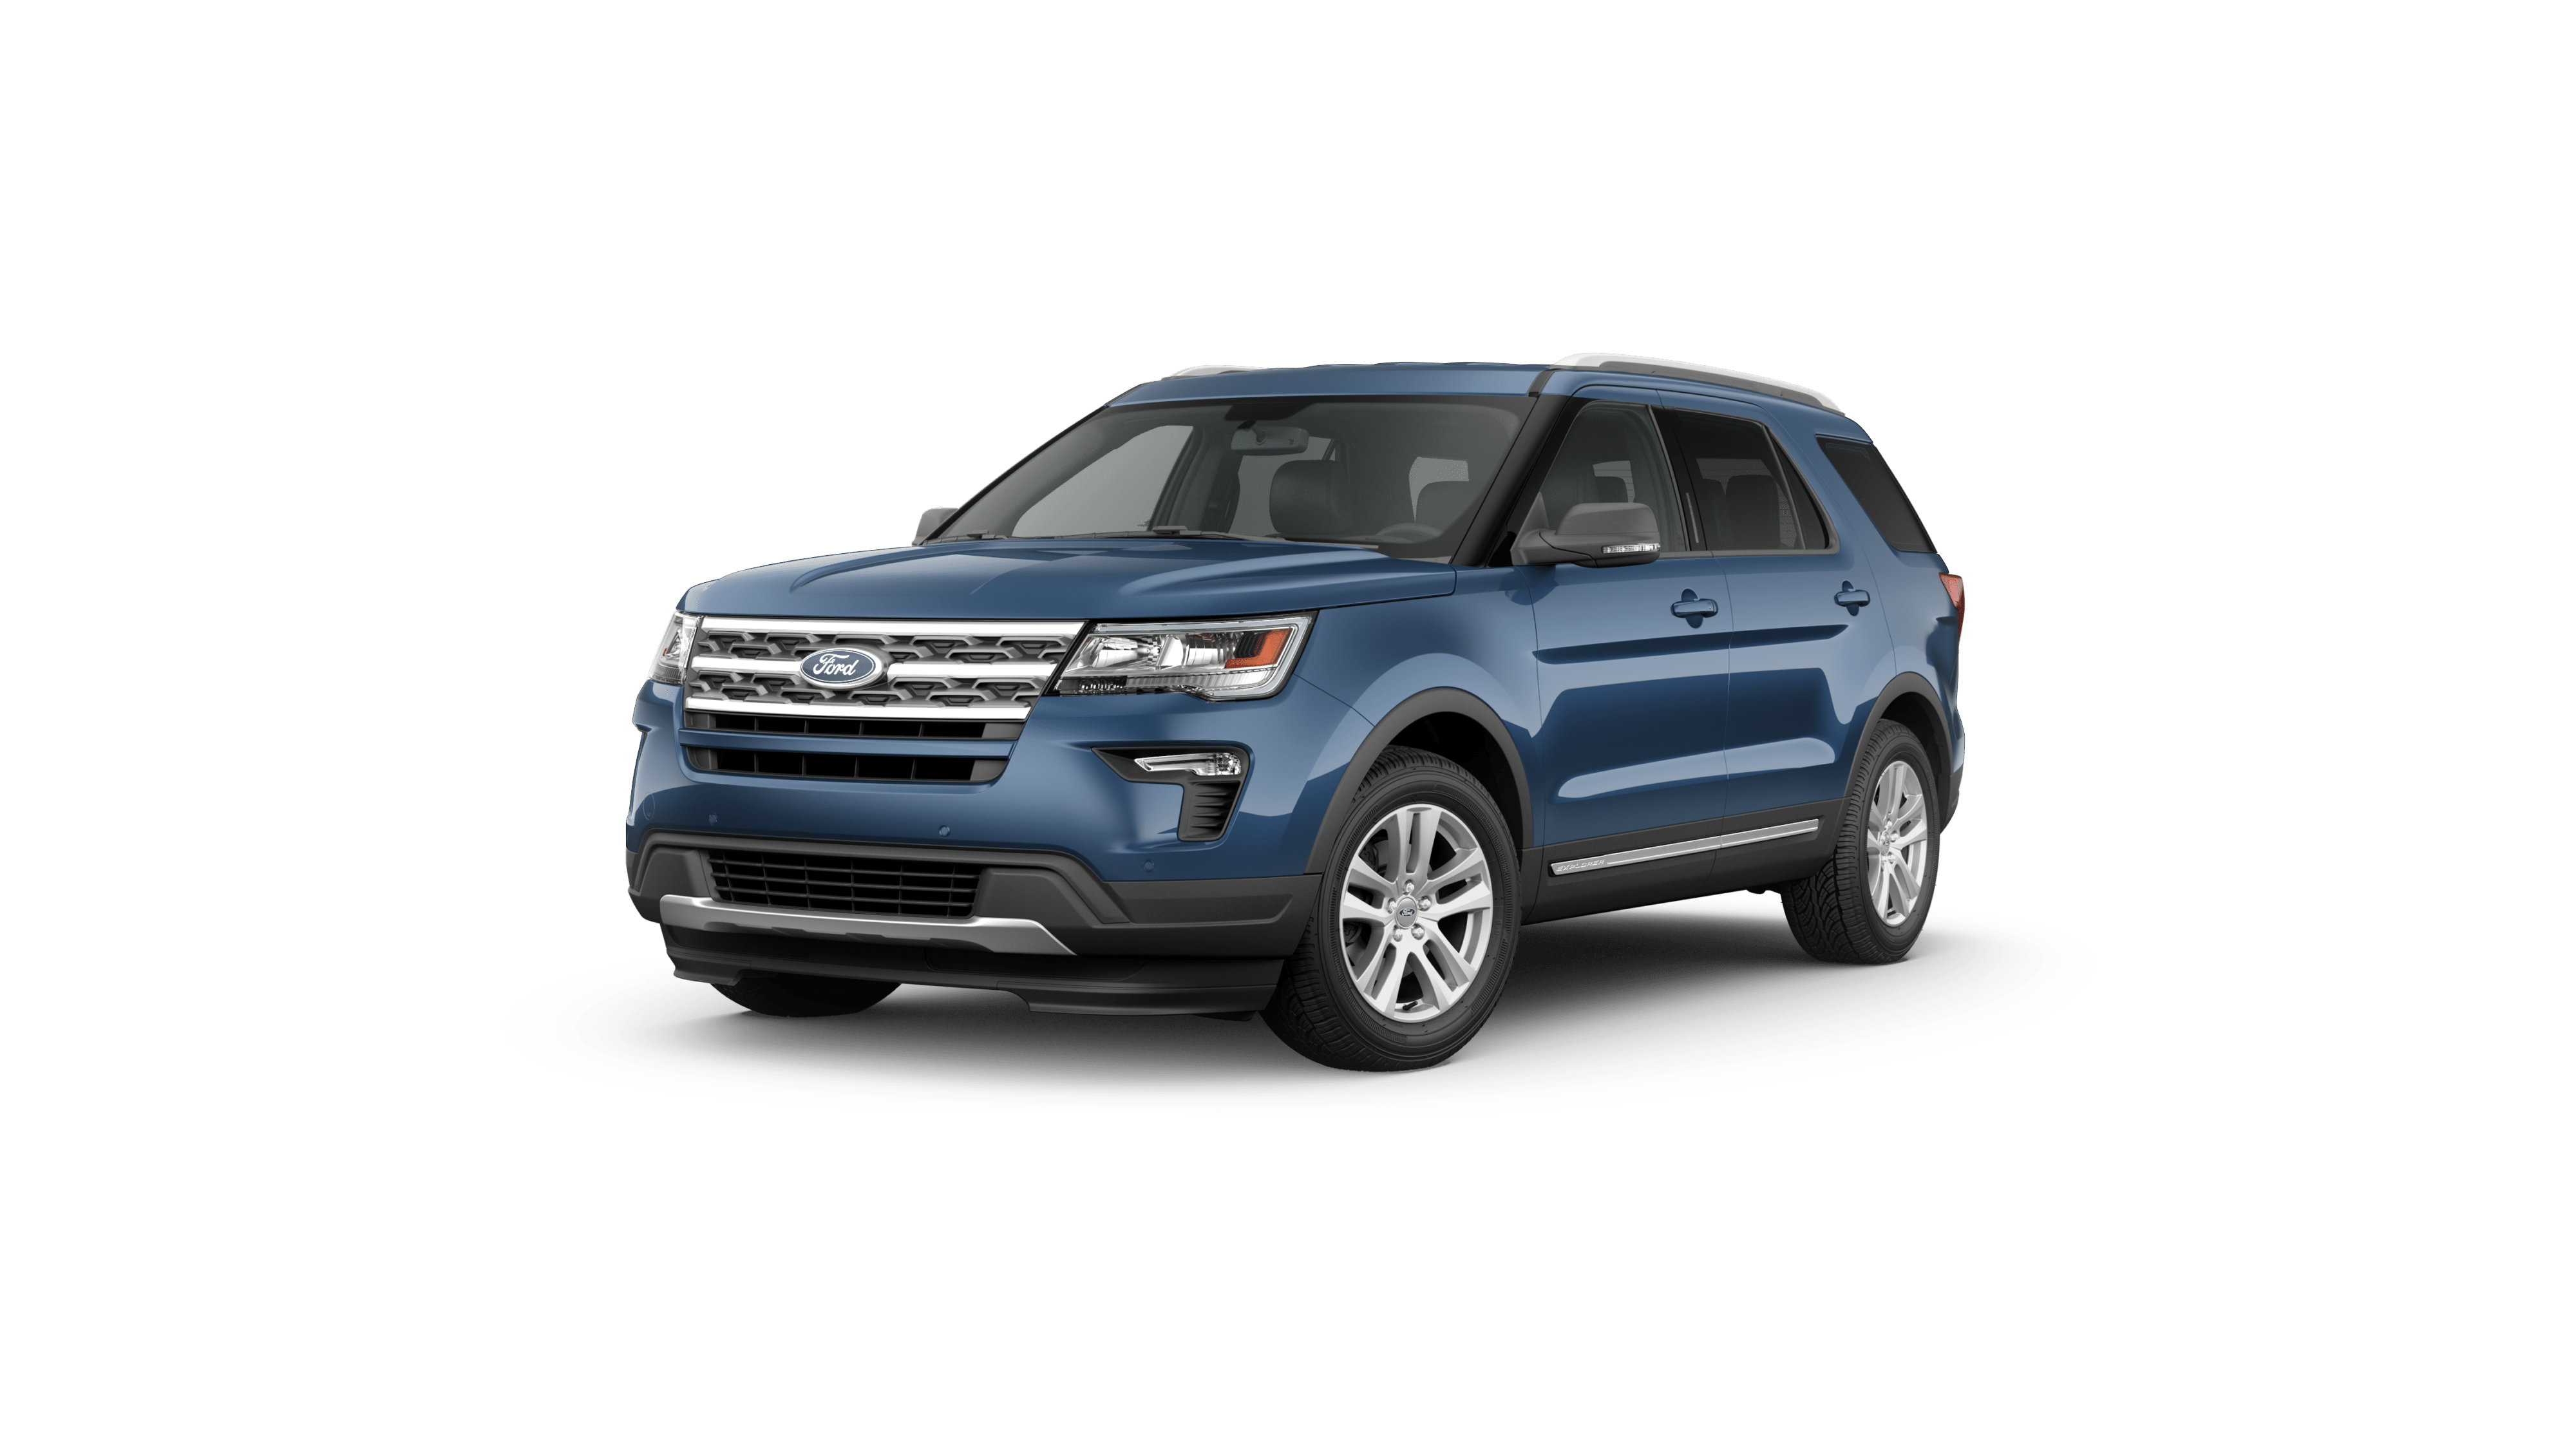 Ciocca Ford Quakertown >> New 2019 Ford Explorer XLT 4WD For Sale in Quakertown, PA   KGA82606